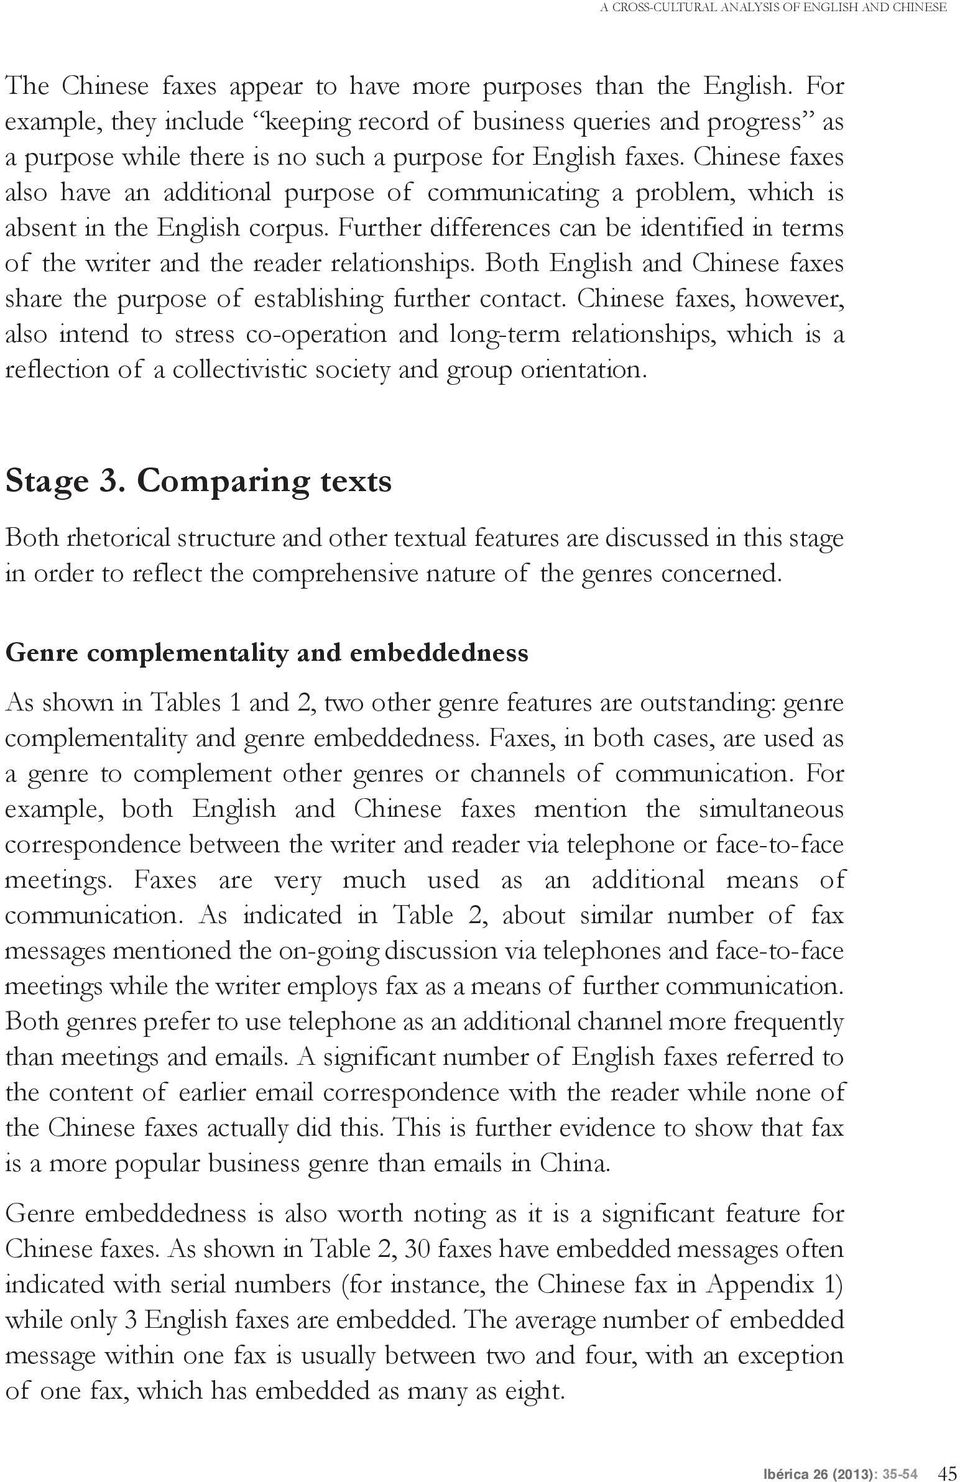 Chinese faxes also have an additional purpose of communicating a problem, which is absent in the English corpus.